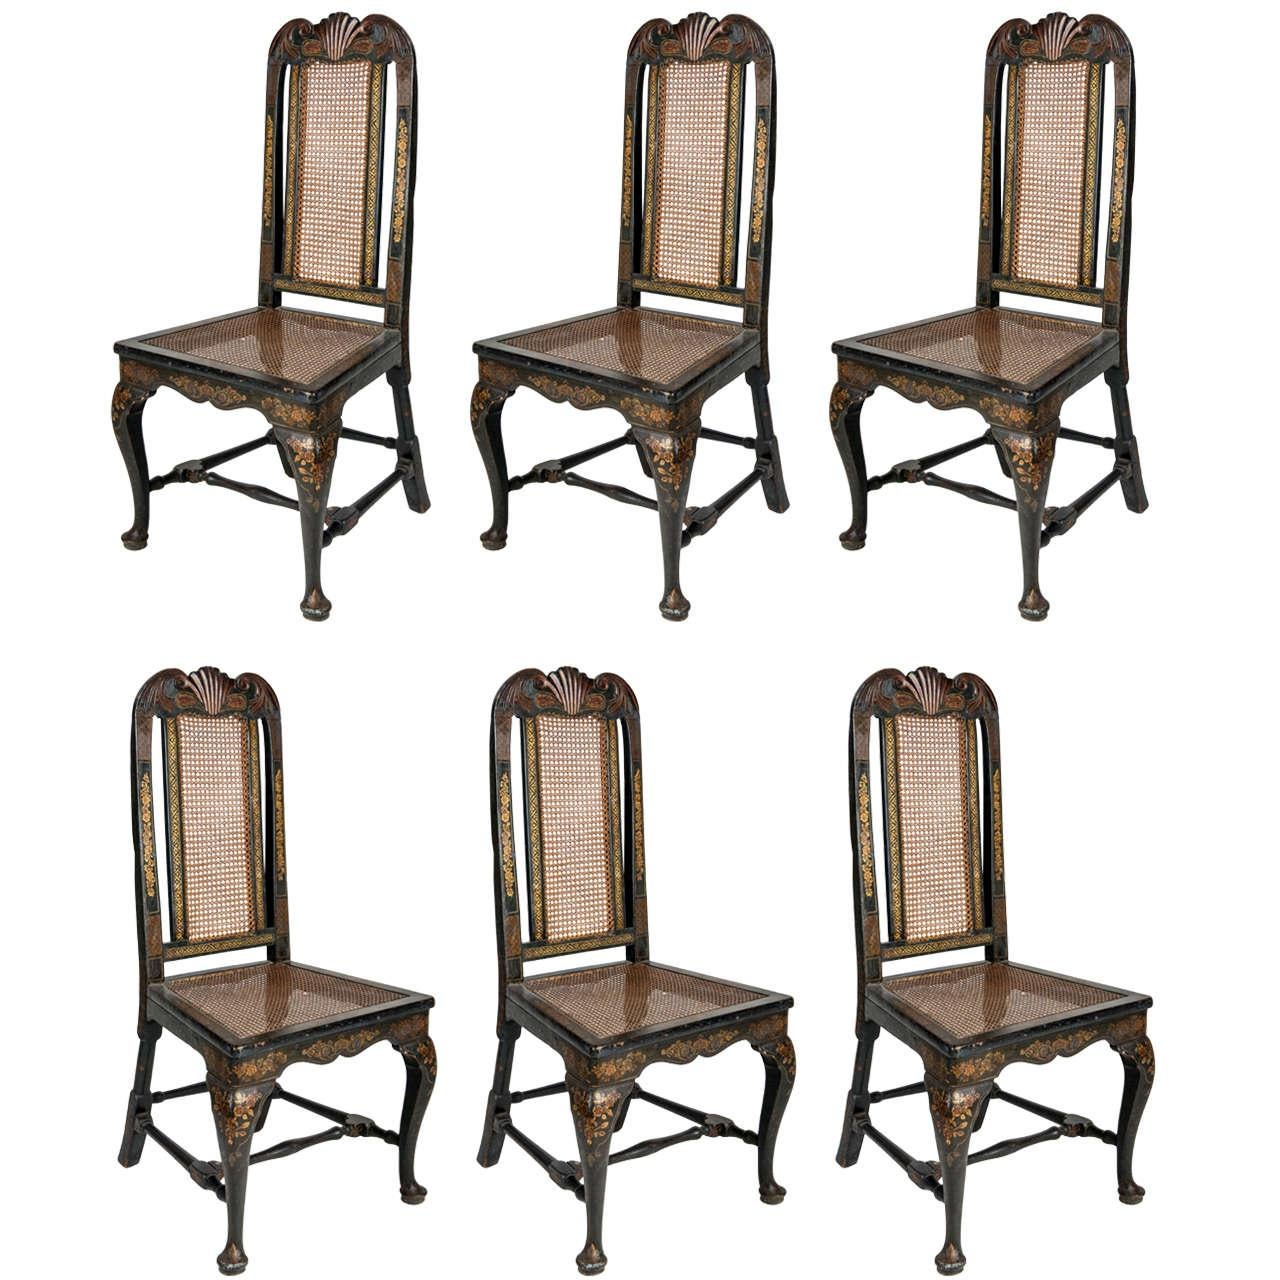 Fine Set of Six 18th Century  Dining  Room Chairs  England 1750